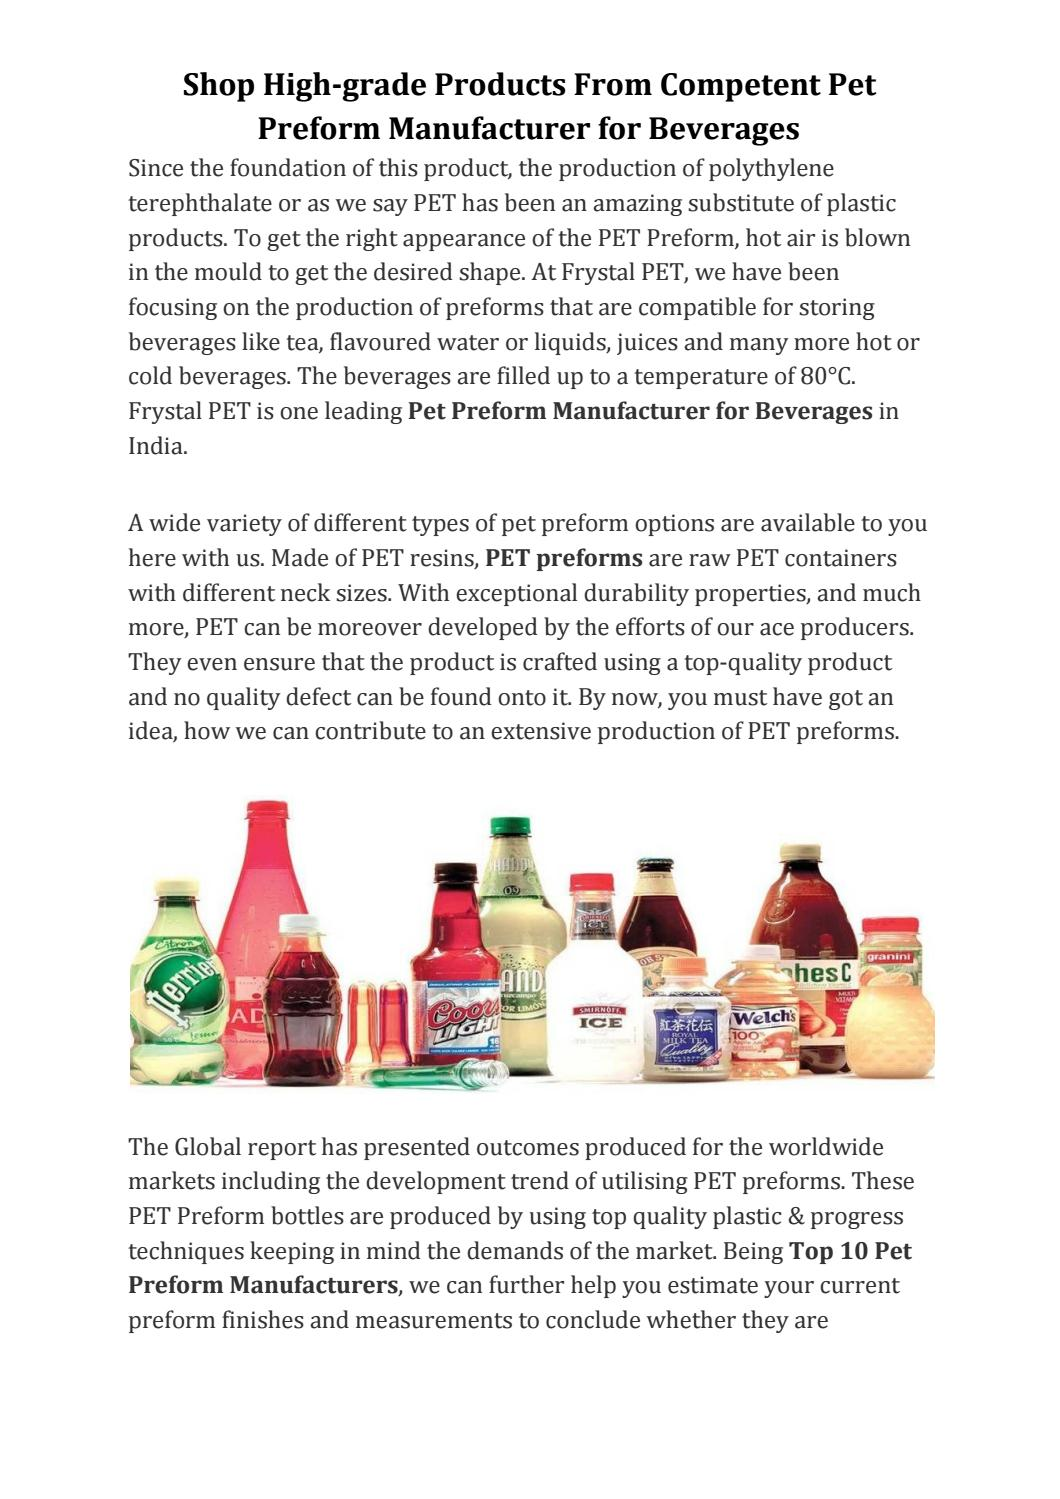 Shop High Grade Products From Competent Pet Preform Manufacturer For Beverages By Frystalpet Com Issuu